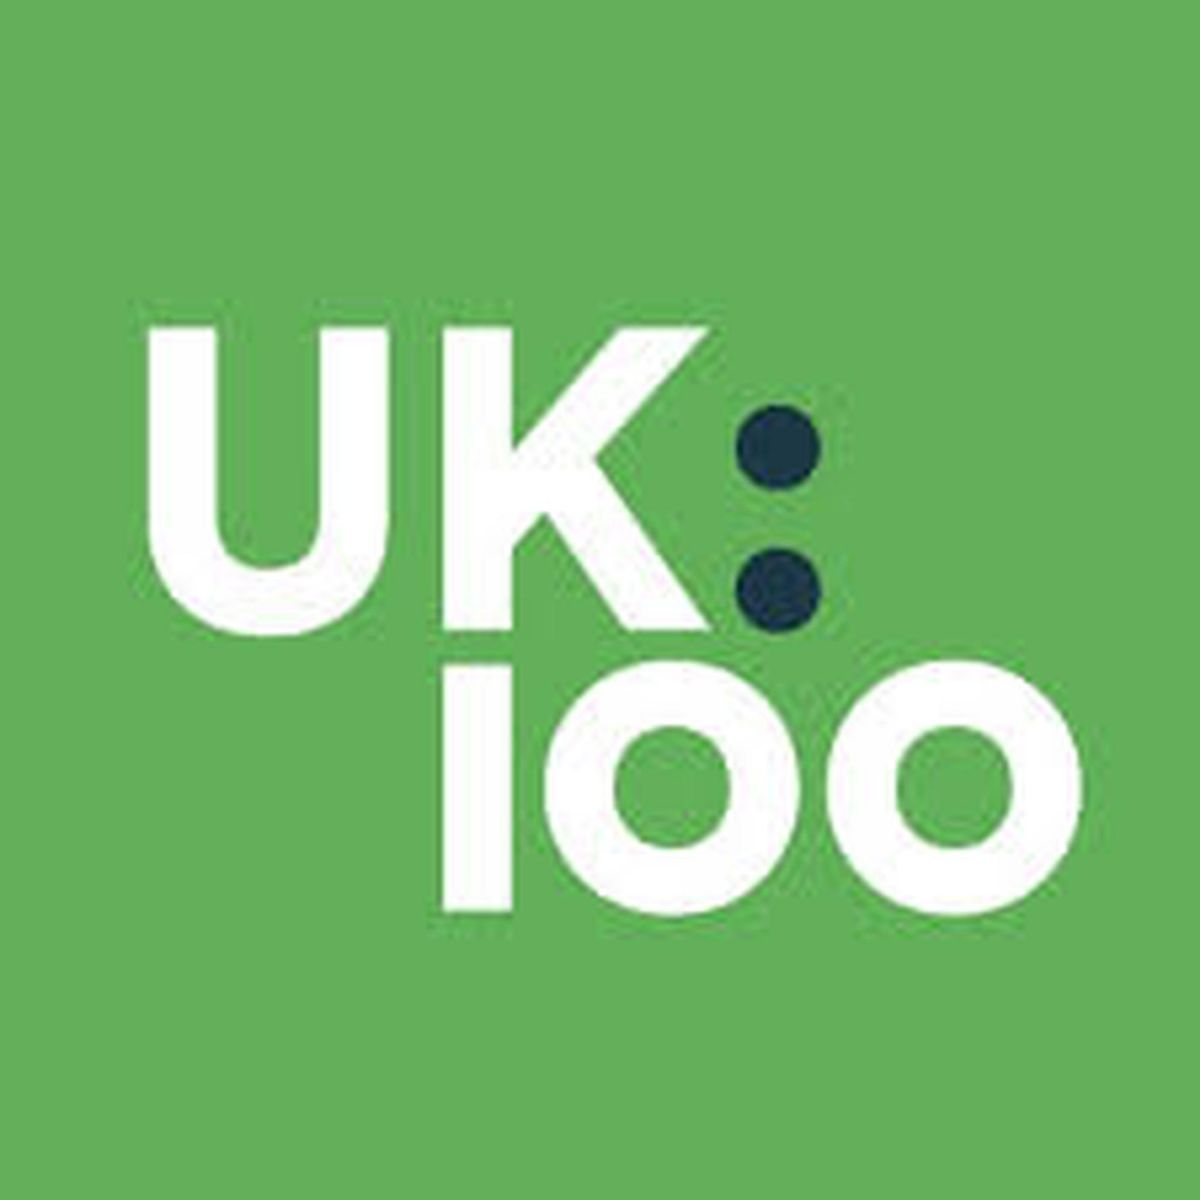 UK100 is a network of over 100 local government leaders who have pledged to secure the future for their communities by shifting to 100% clean energy by 2050